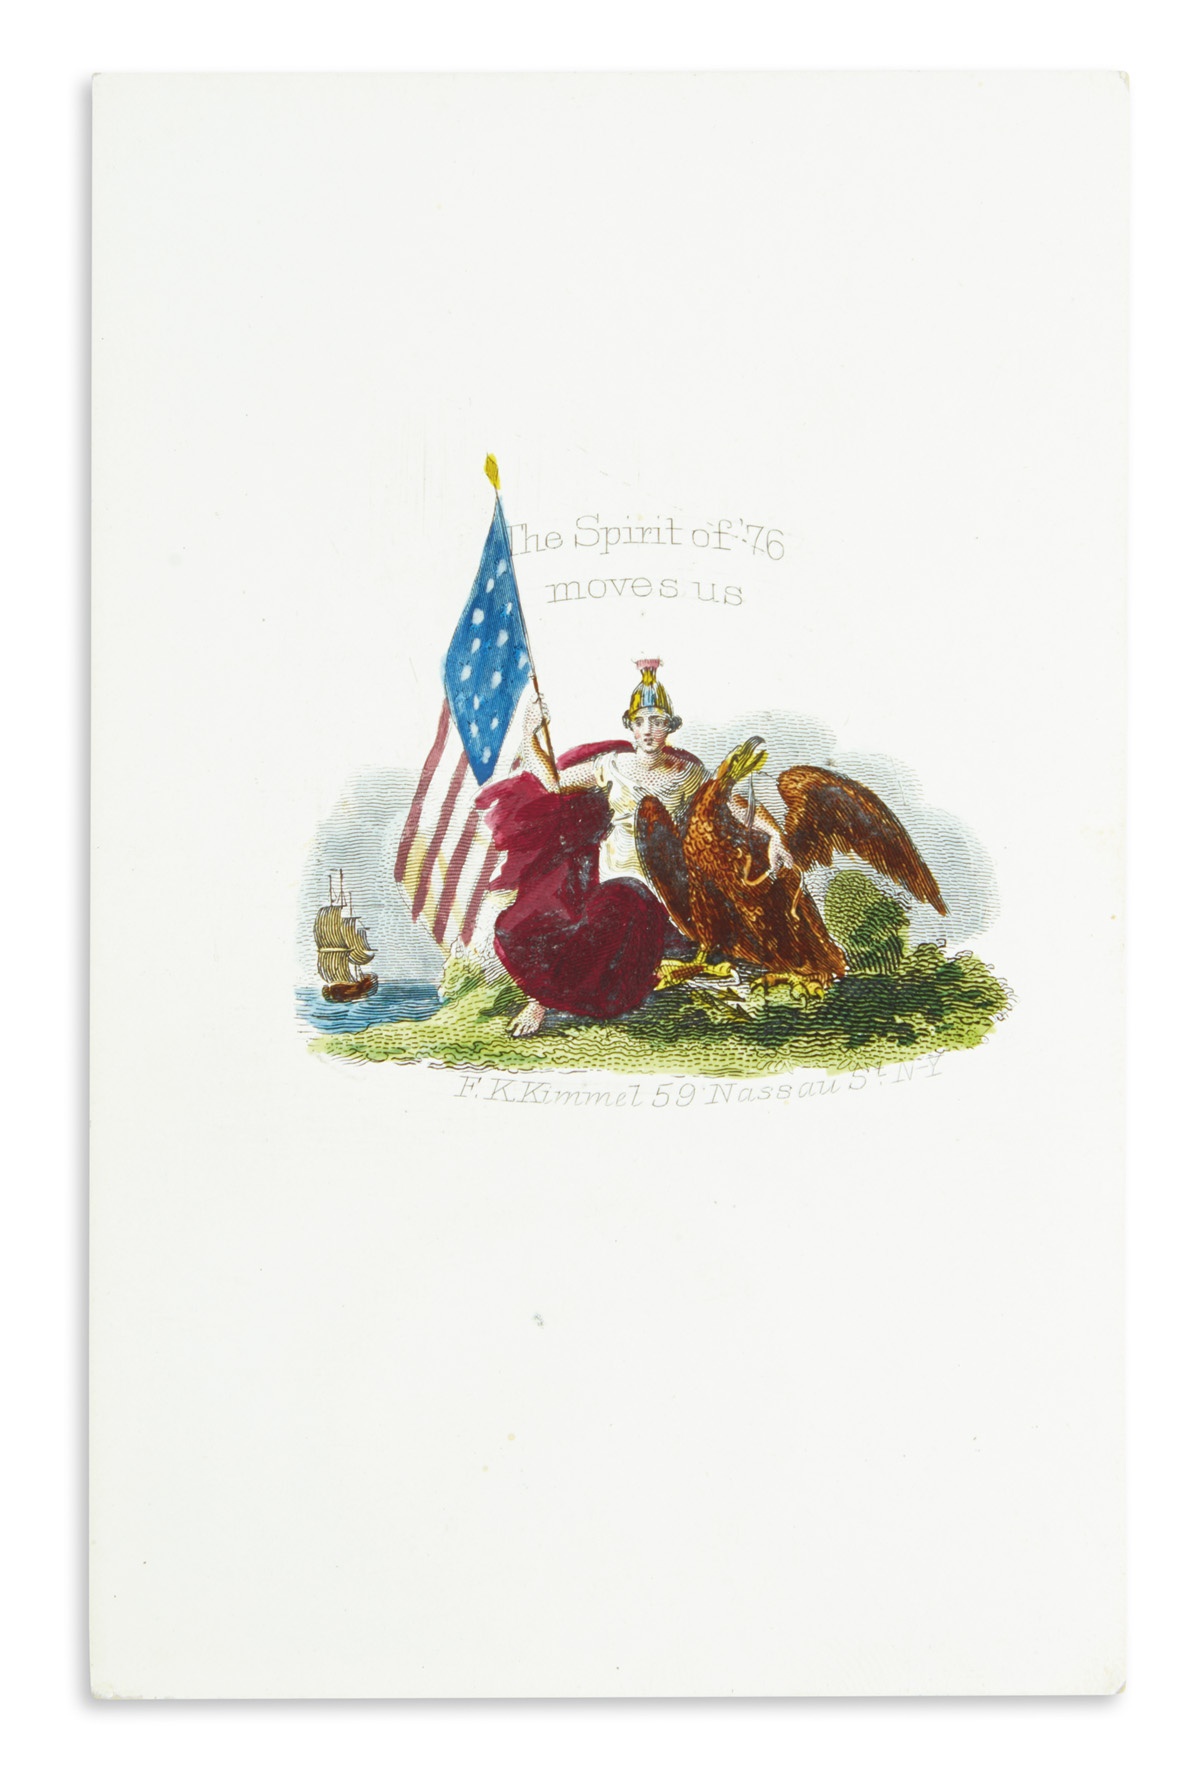 (CIVIL WAR--COVERS.) Group of 20 proof cards for patriotic covers by Kimmel, accompanied by the related covers.